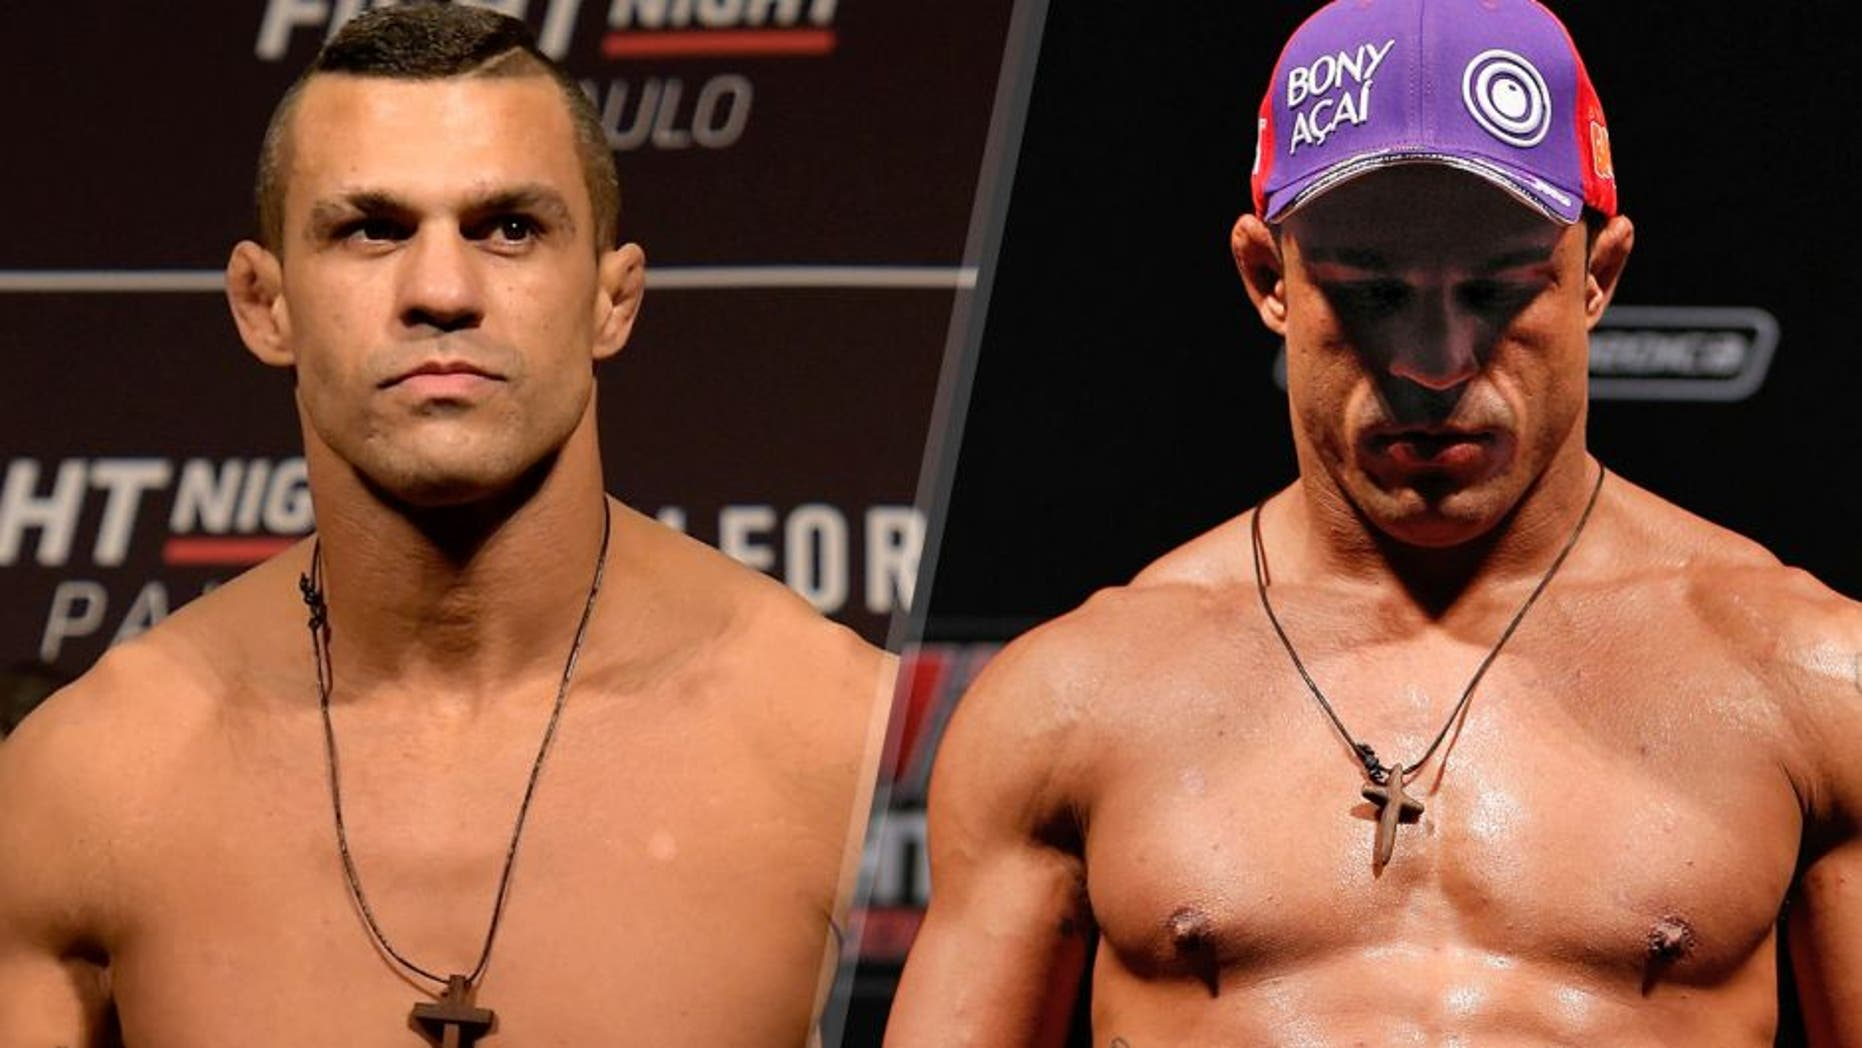 SAO PAULO, BRAZIL - NOVEMBER 06:Vitor Belfort of Brazil weighs in during the UFC Fight Night weigh-in at Ibirapuera Gymnasium on November 06, 2015 in Sao Paulo, Brazil. (Photo by Buda Mendes/Zuffa LLC/Zuffa LLC via Getty Images) GOIANIA, BRAZIL - NOVEMBER 08: Vitor Belfort weighs in during the UFC weigh-in event at Arena Goiania on November 8, 2013 in Goiania, Brazil. (Photo by Josh Hedges/Zuffa LLC/Zuffa LLC via Getty Images)